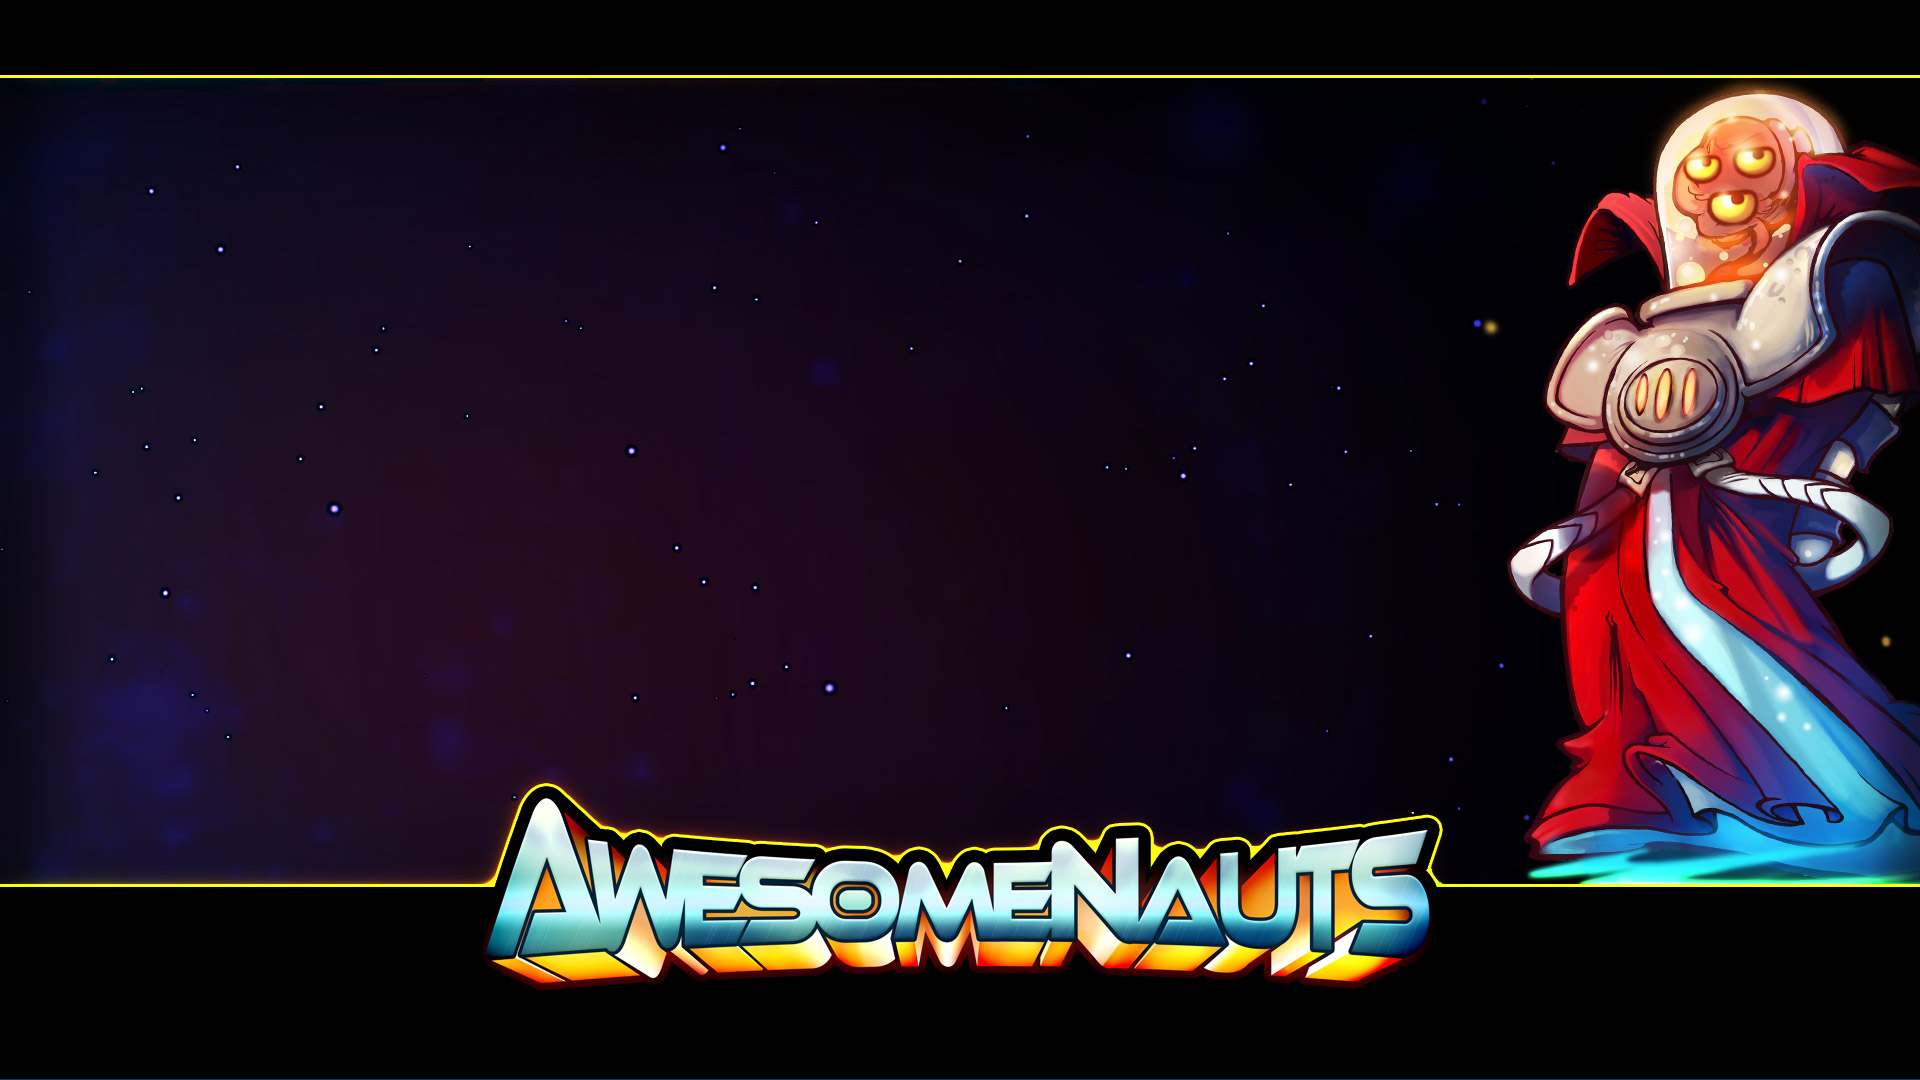 Awesomenauts Wallpaper in 1920x1080